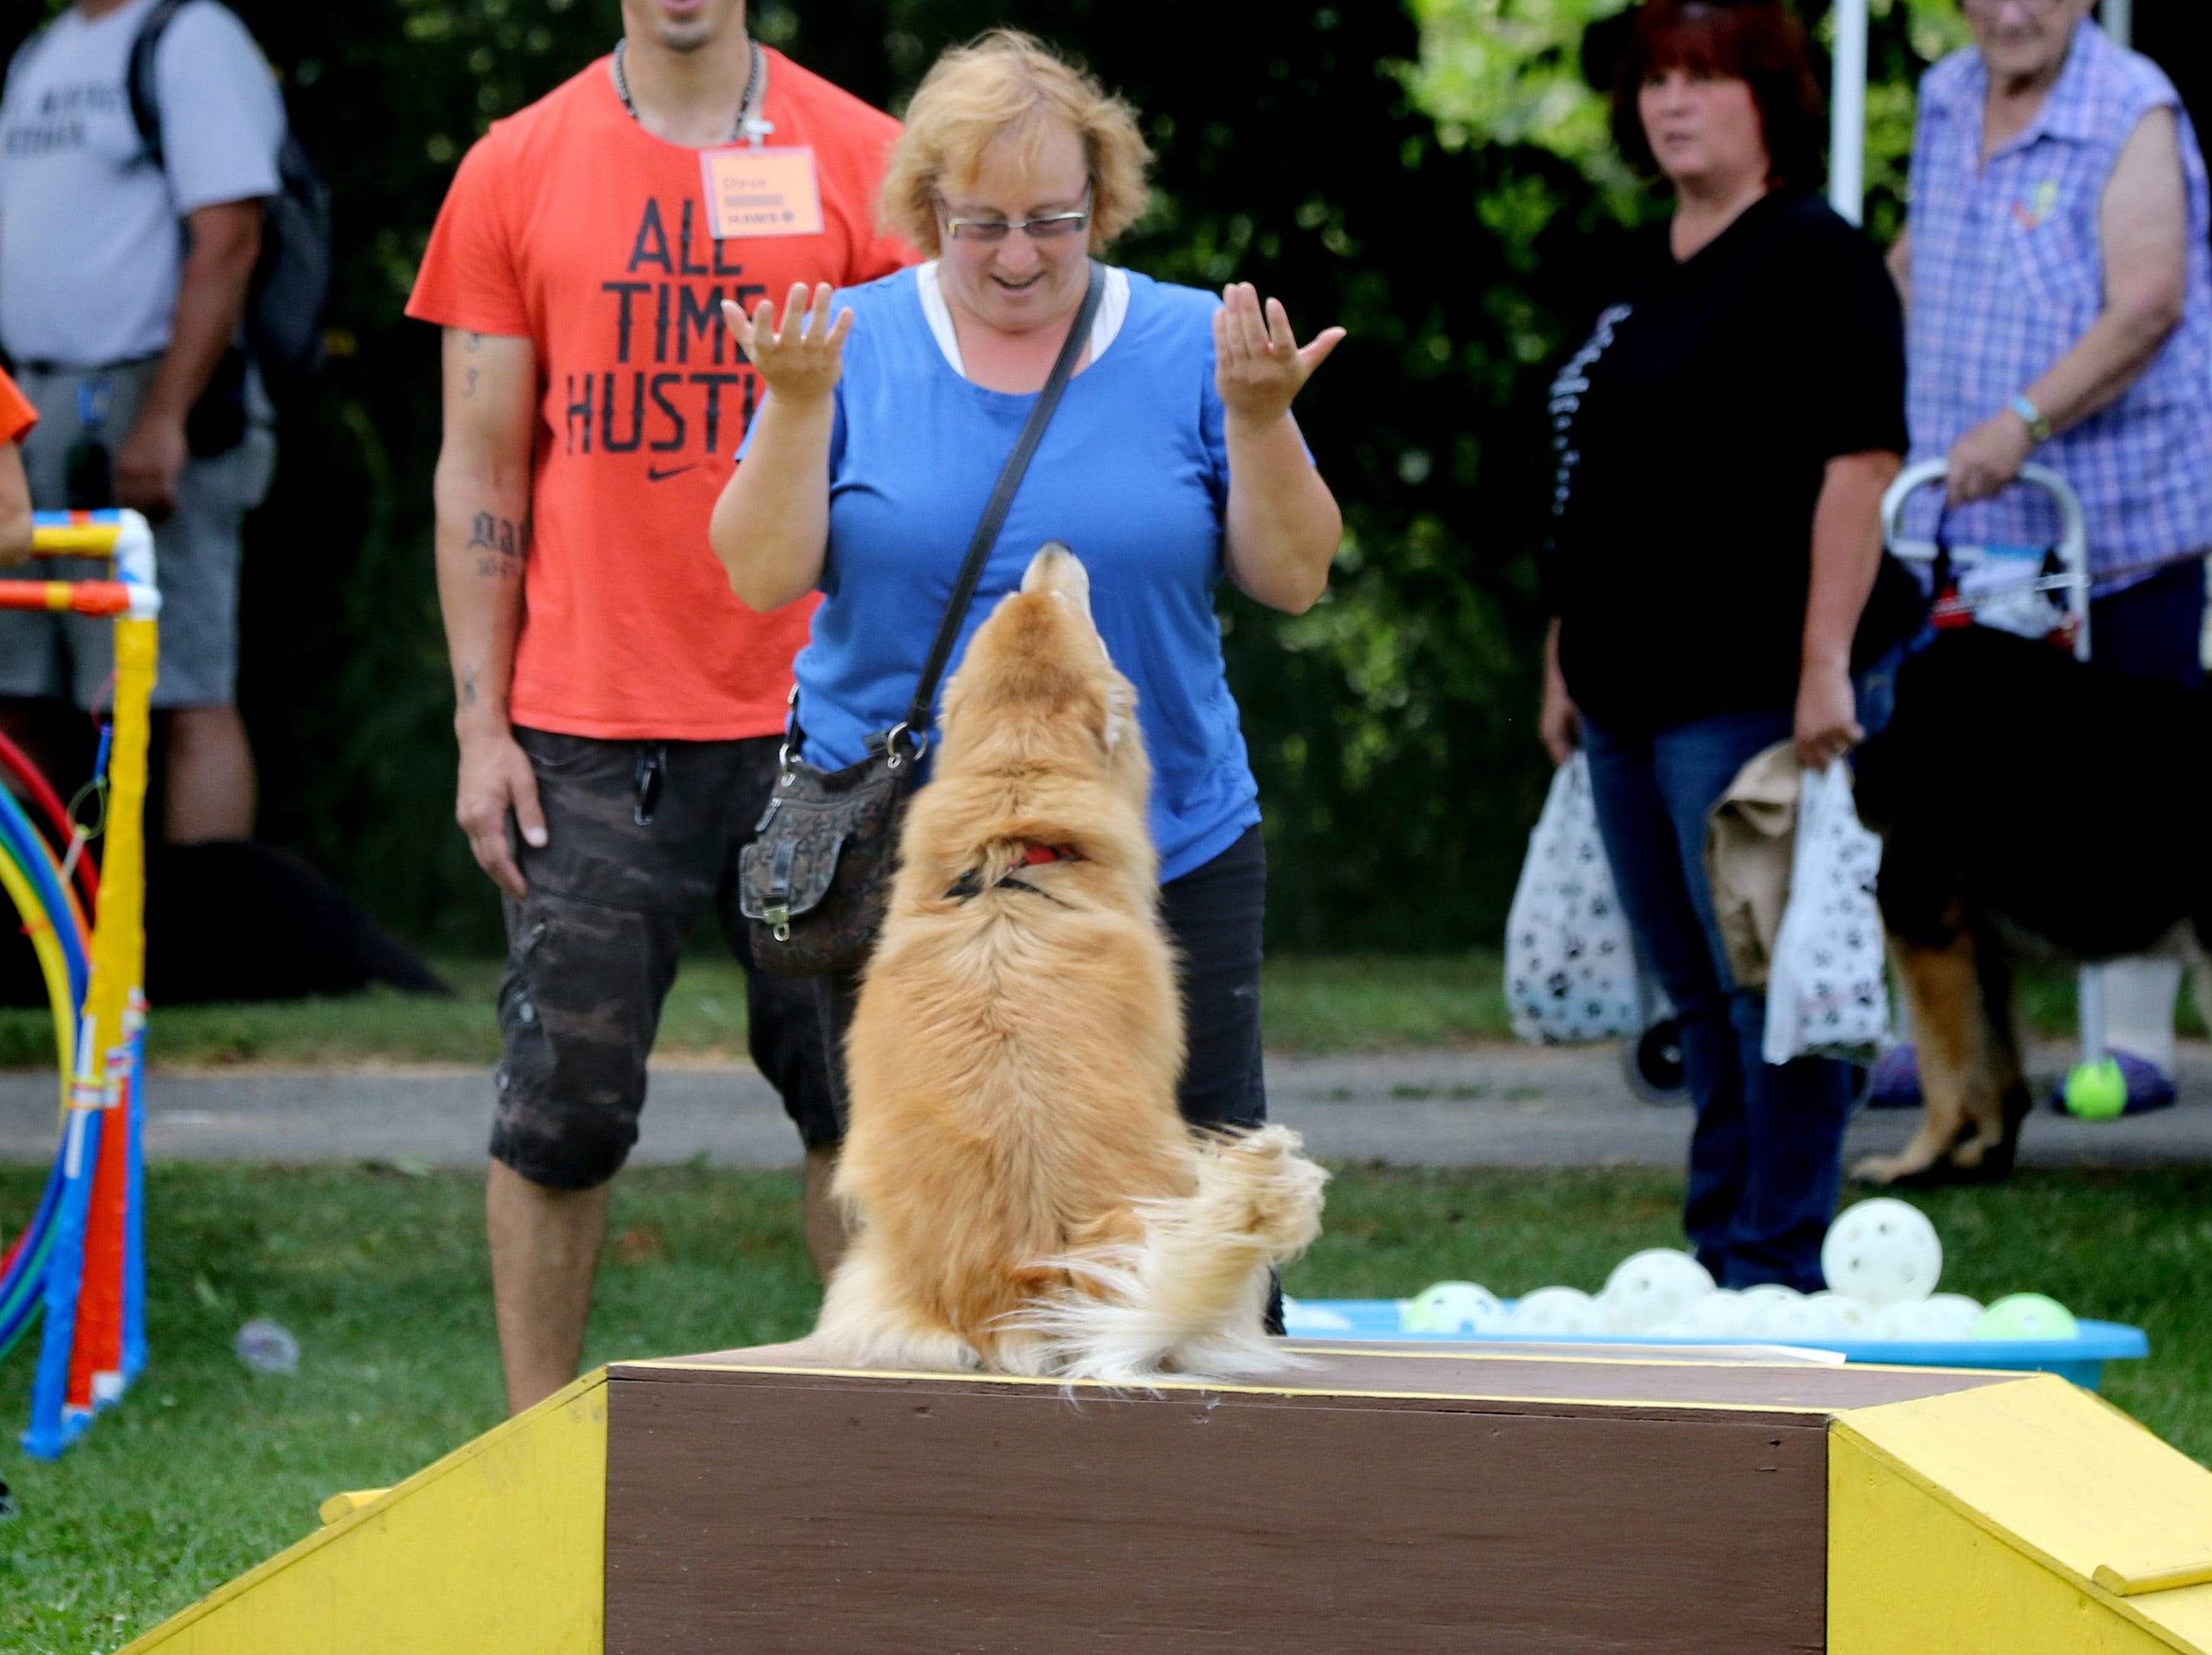 Mary Muccilli of Milwaukee gives McGiver a bit or praise after it ran the Canine Sensory Enrichment Playground during the 11th annual HAWS Pet Fair at Rotary Park in Menomonee Falls on Aug. 11.